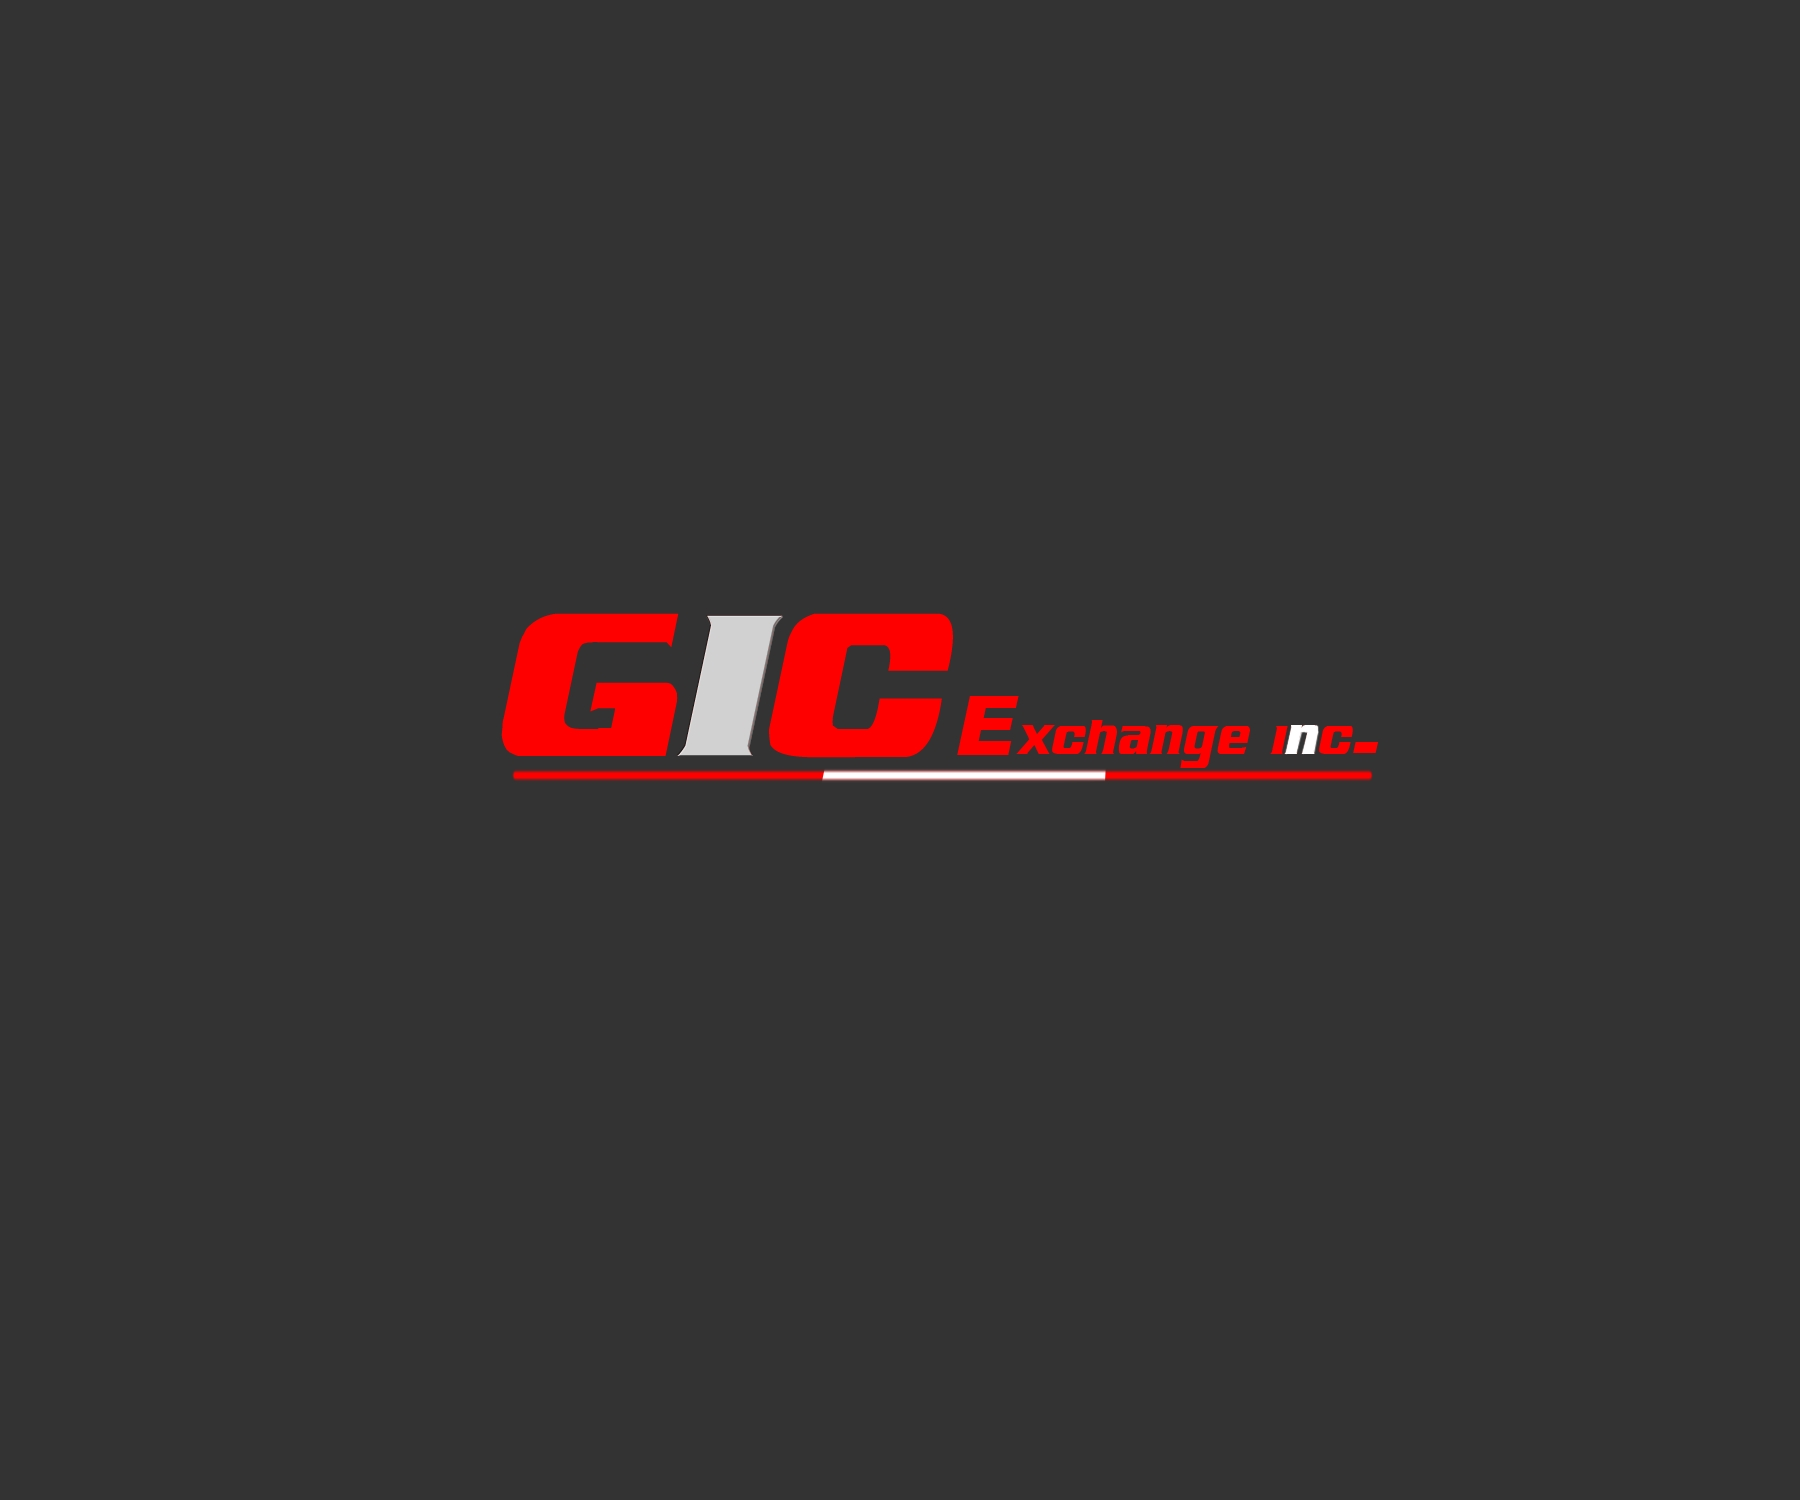 Logo Design by Edenroy Gemida - Entry No. 135 in the Logo Design Contest Logo Design Needed for Exciting New Company GIC Exchange Inc..